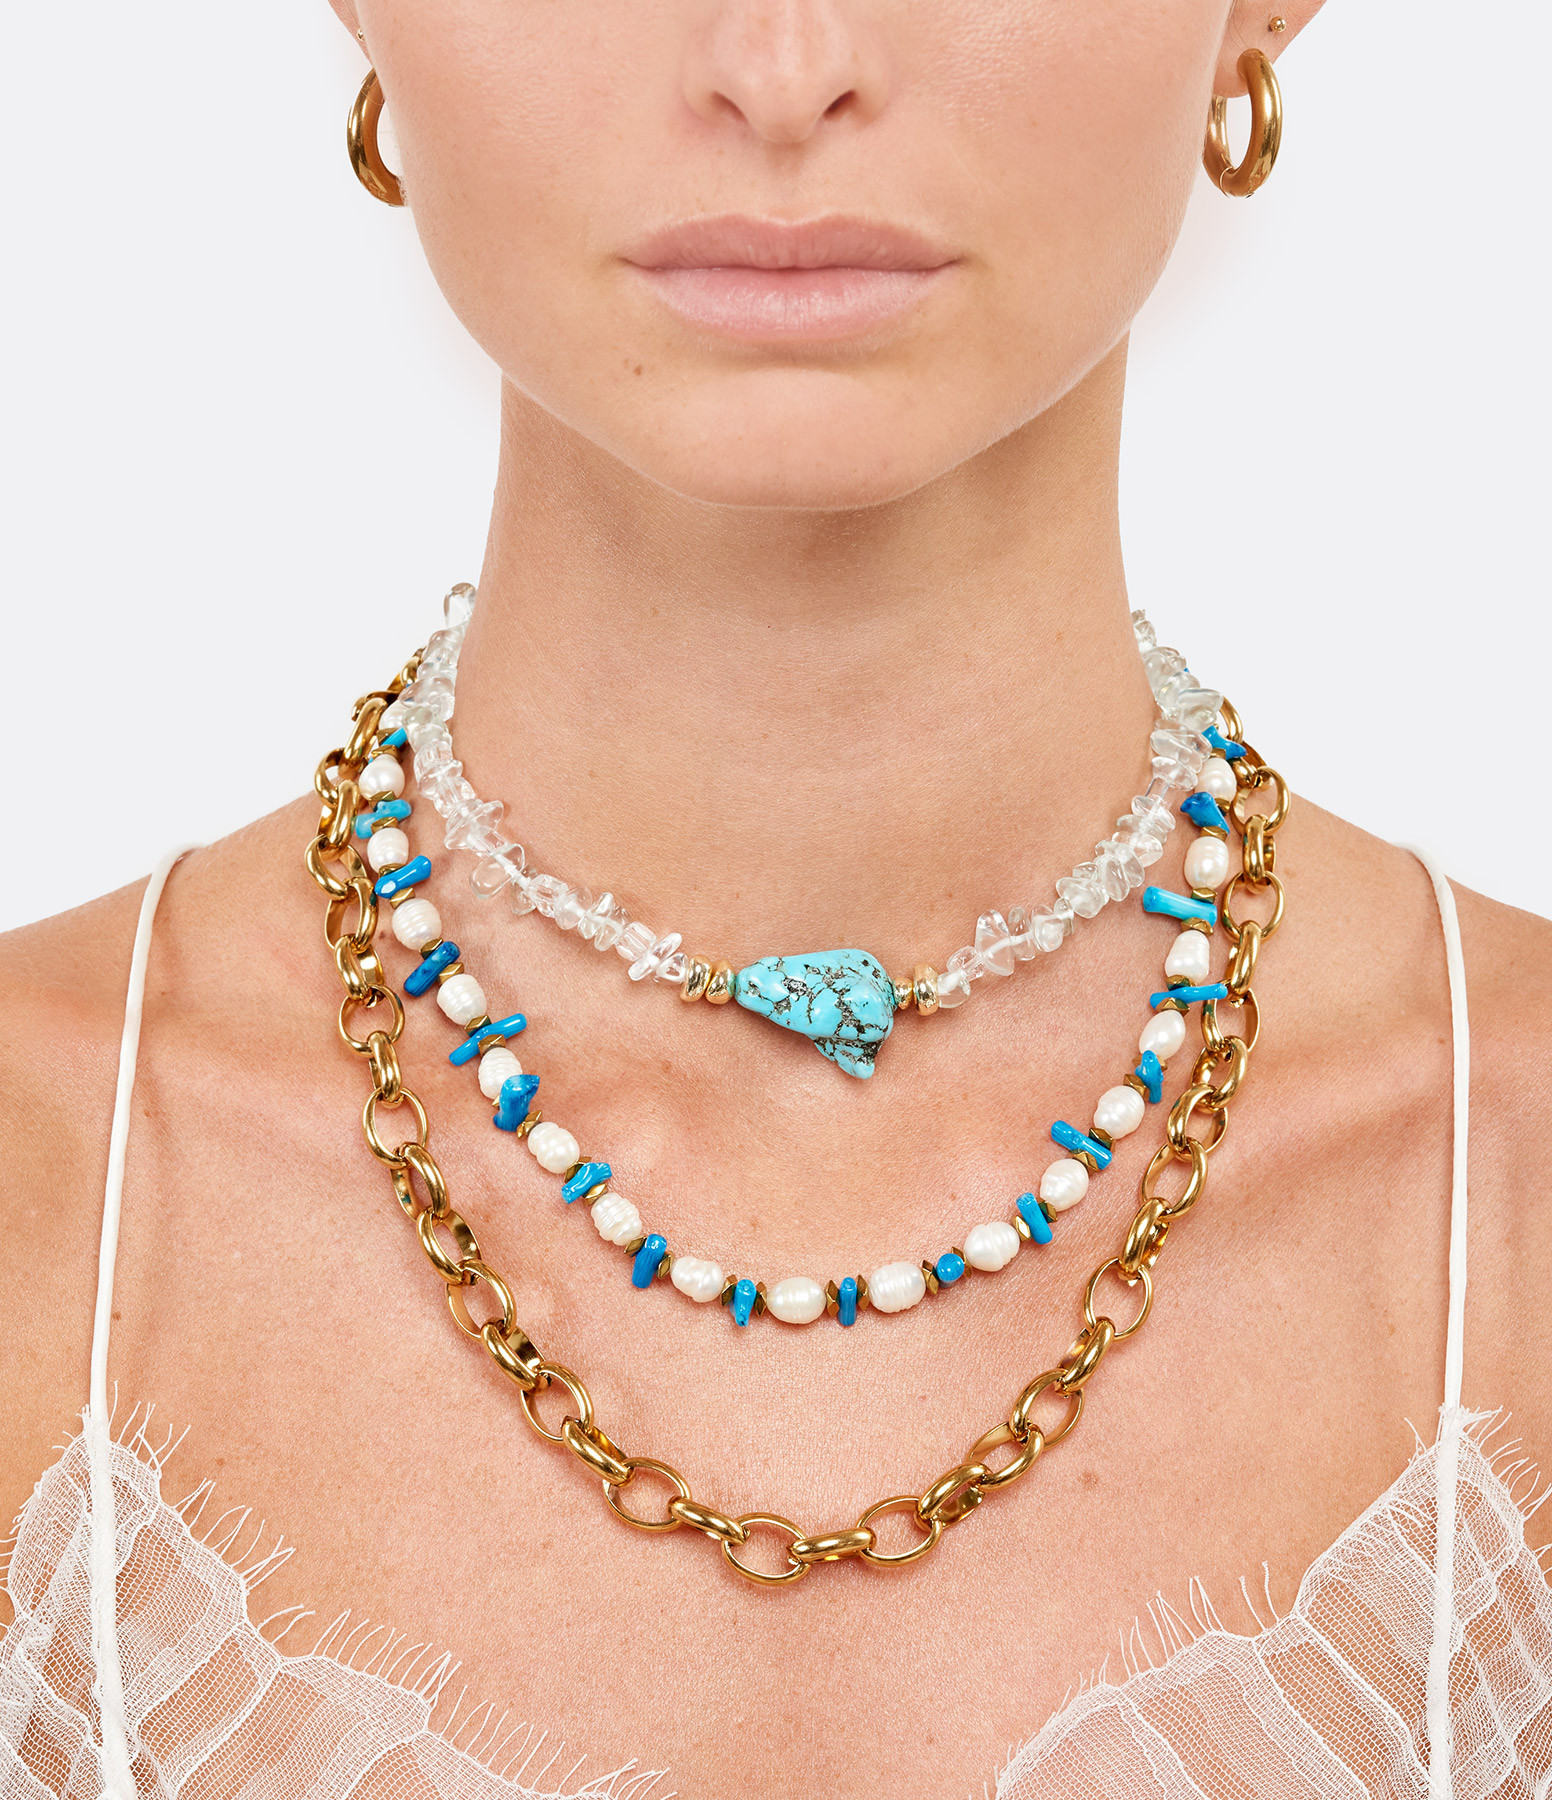 SHAKER JEWELS - Collier Perles Turquoise Plaqué Or